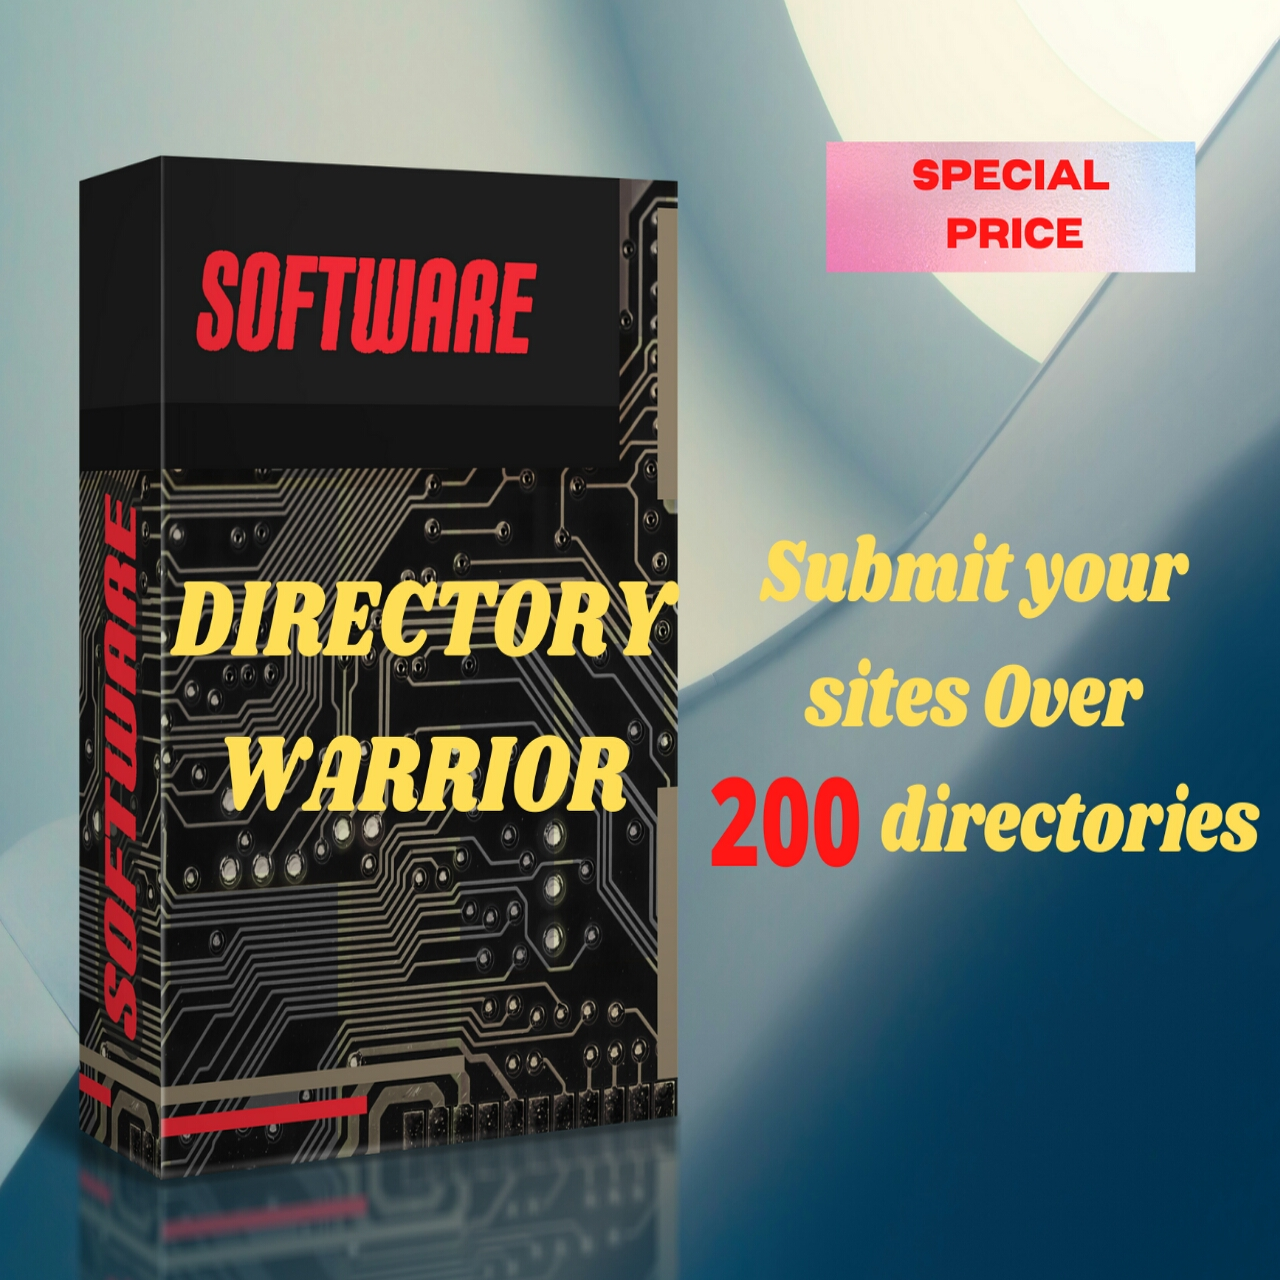 Directory Warrior Software- Submit sites to over 200 directories